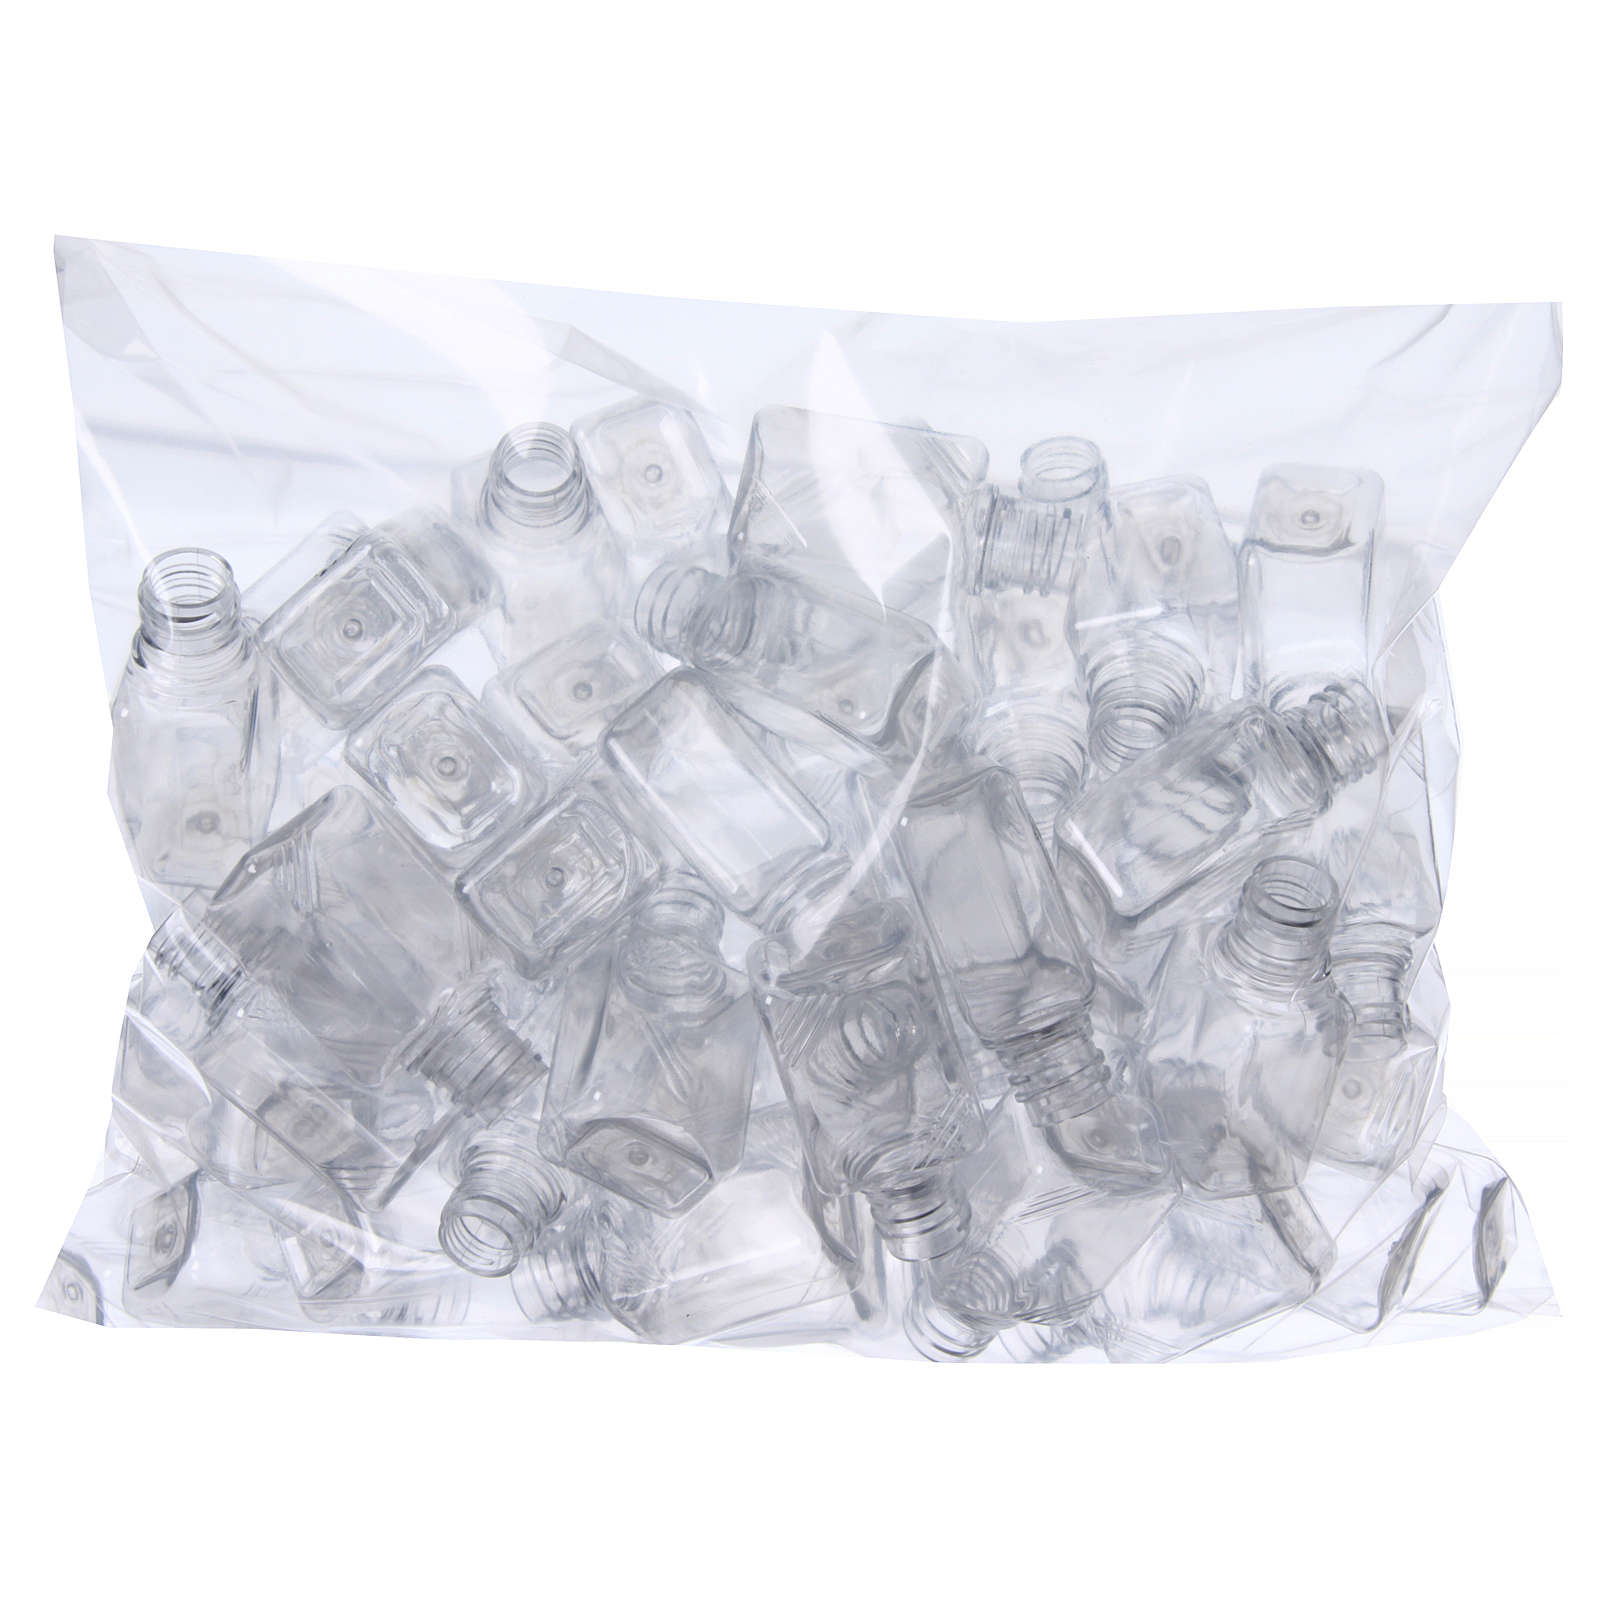 Holy water bottles 30 ml,100 pcs 3